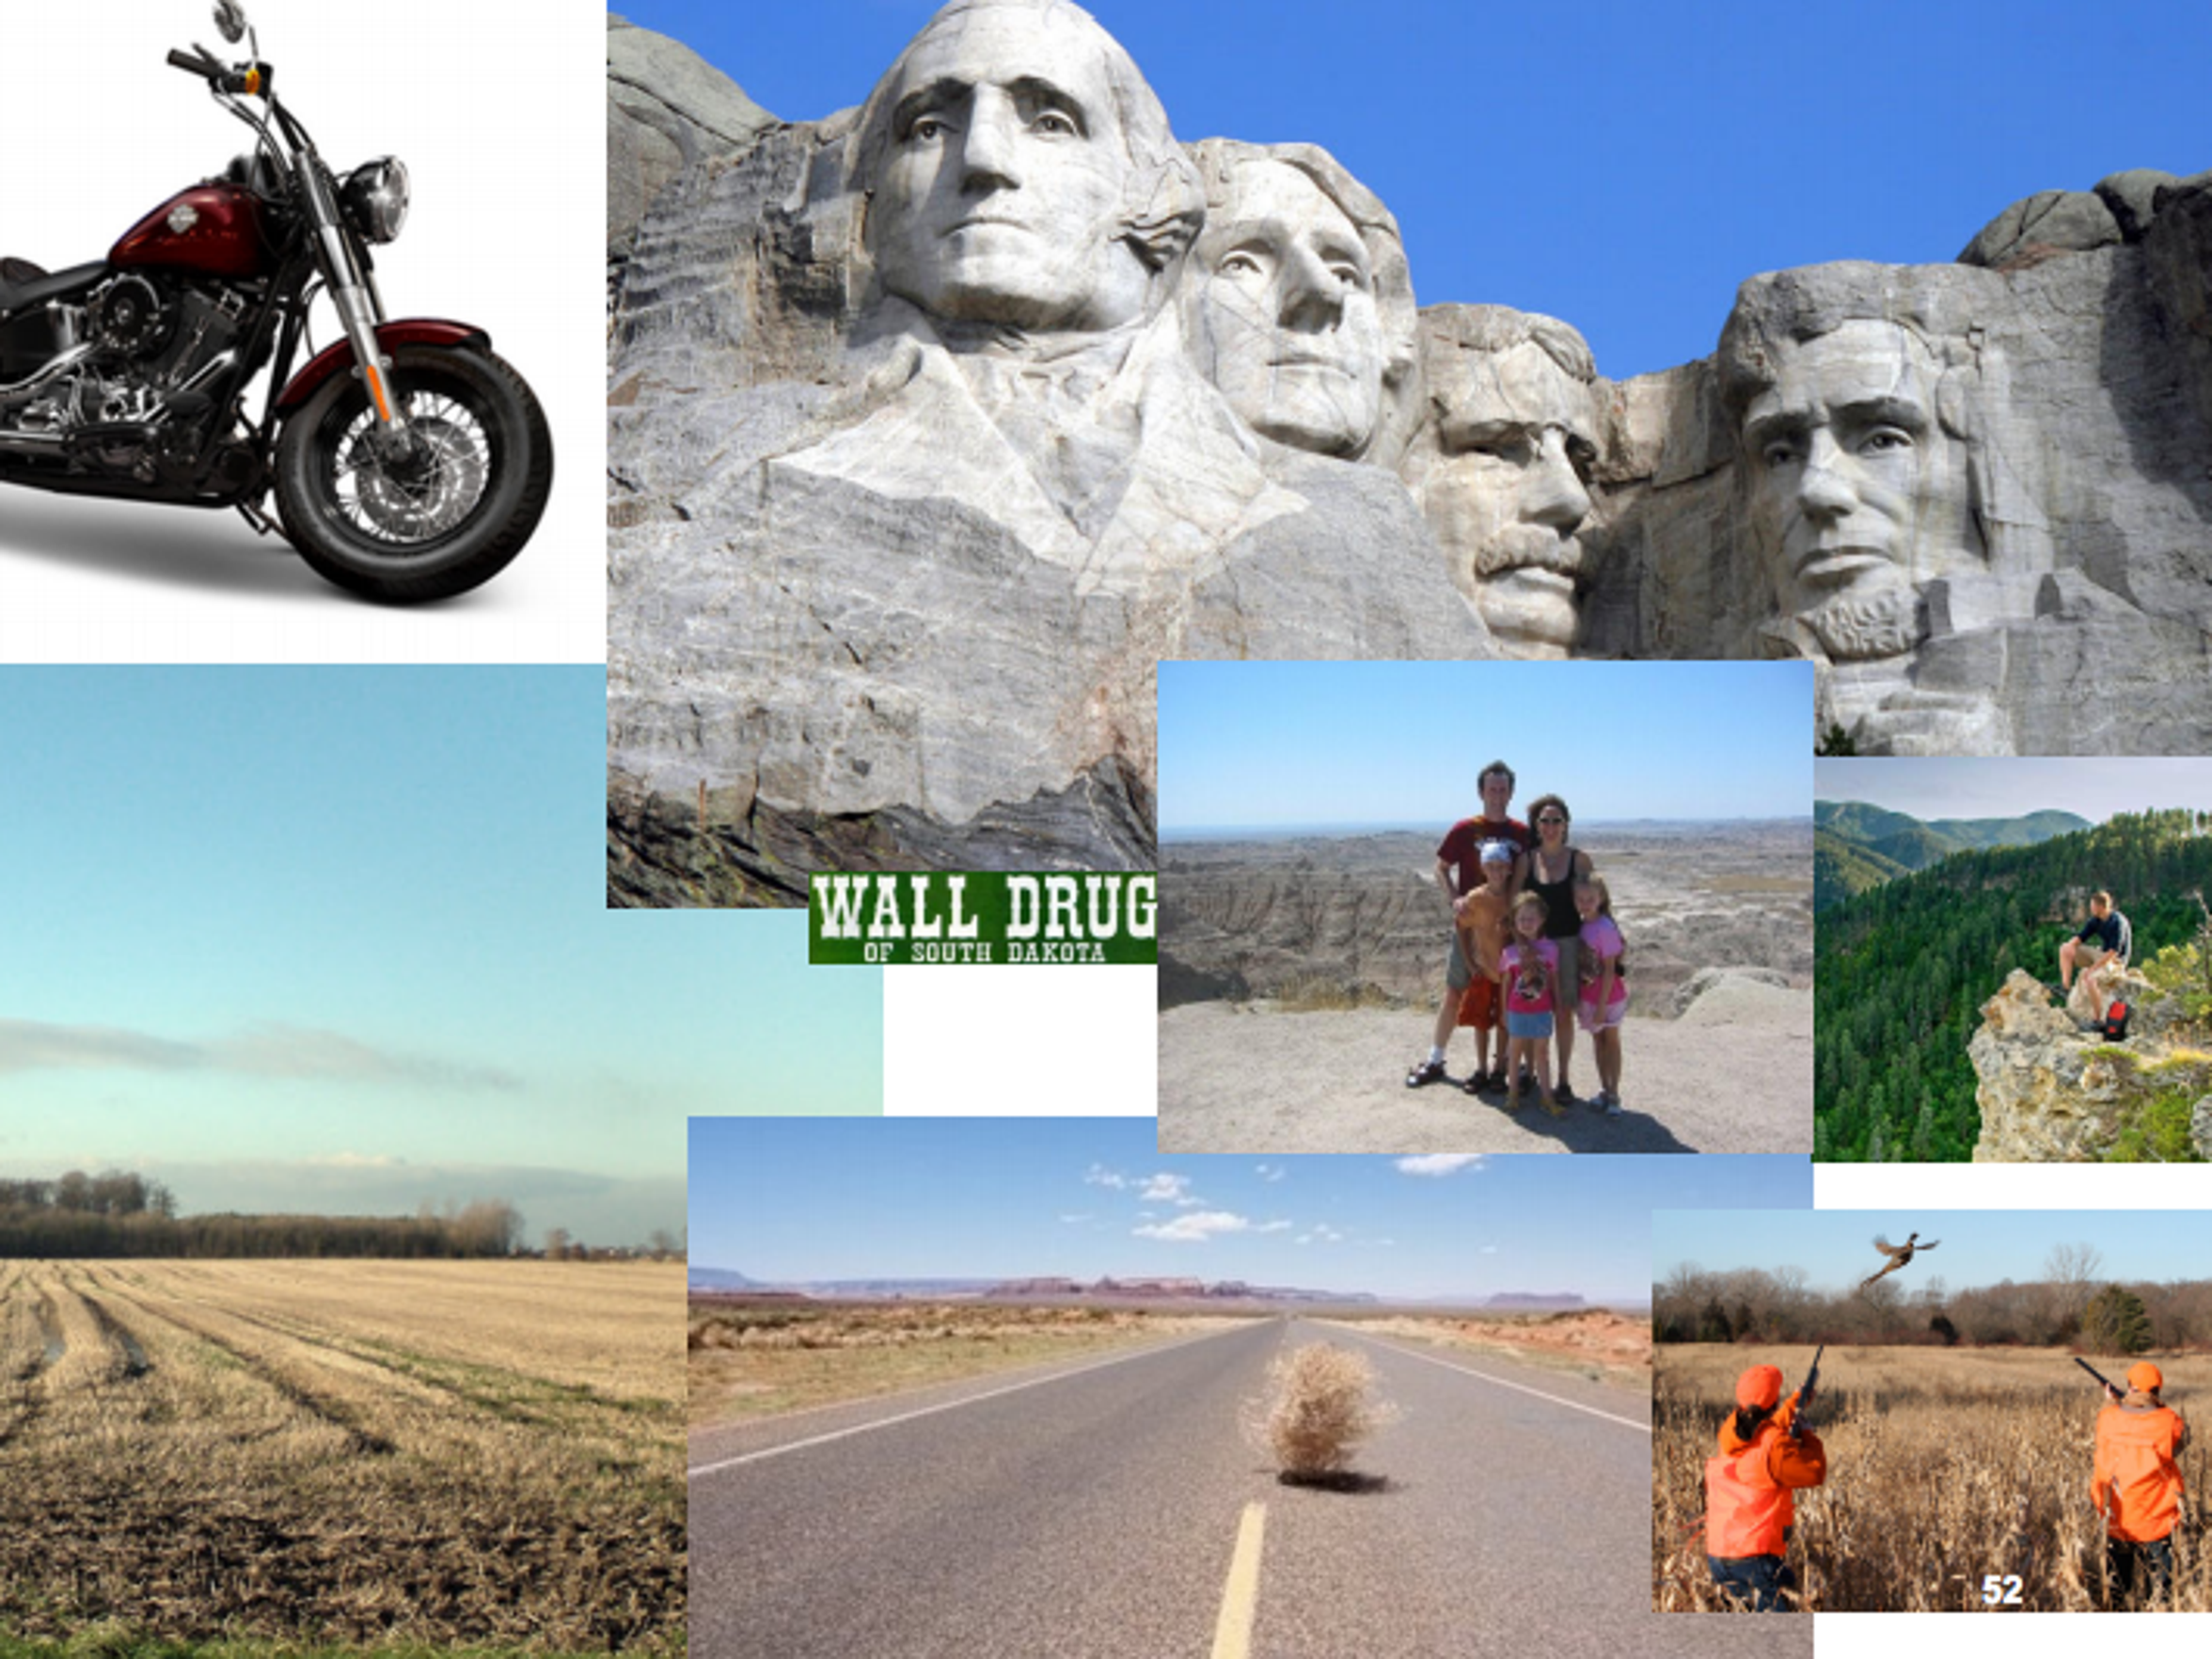 A collage of what focus group respondents thought of South Dakota.